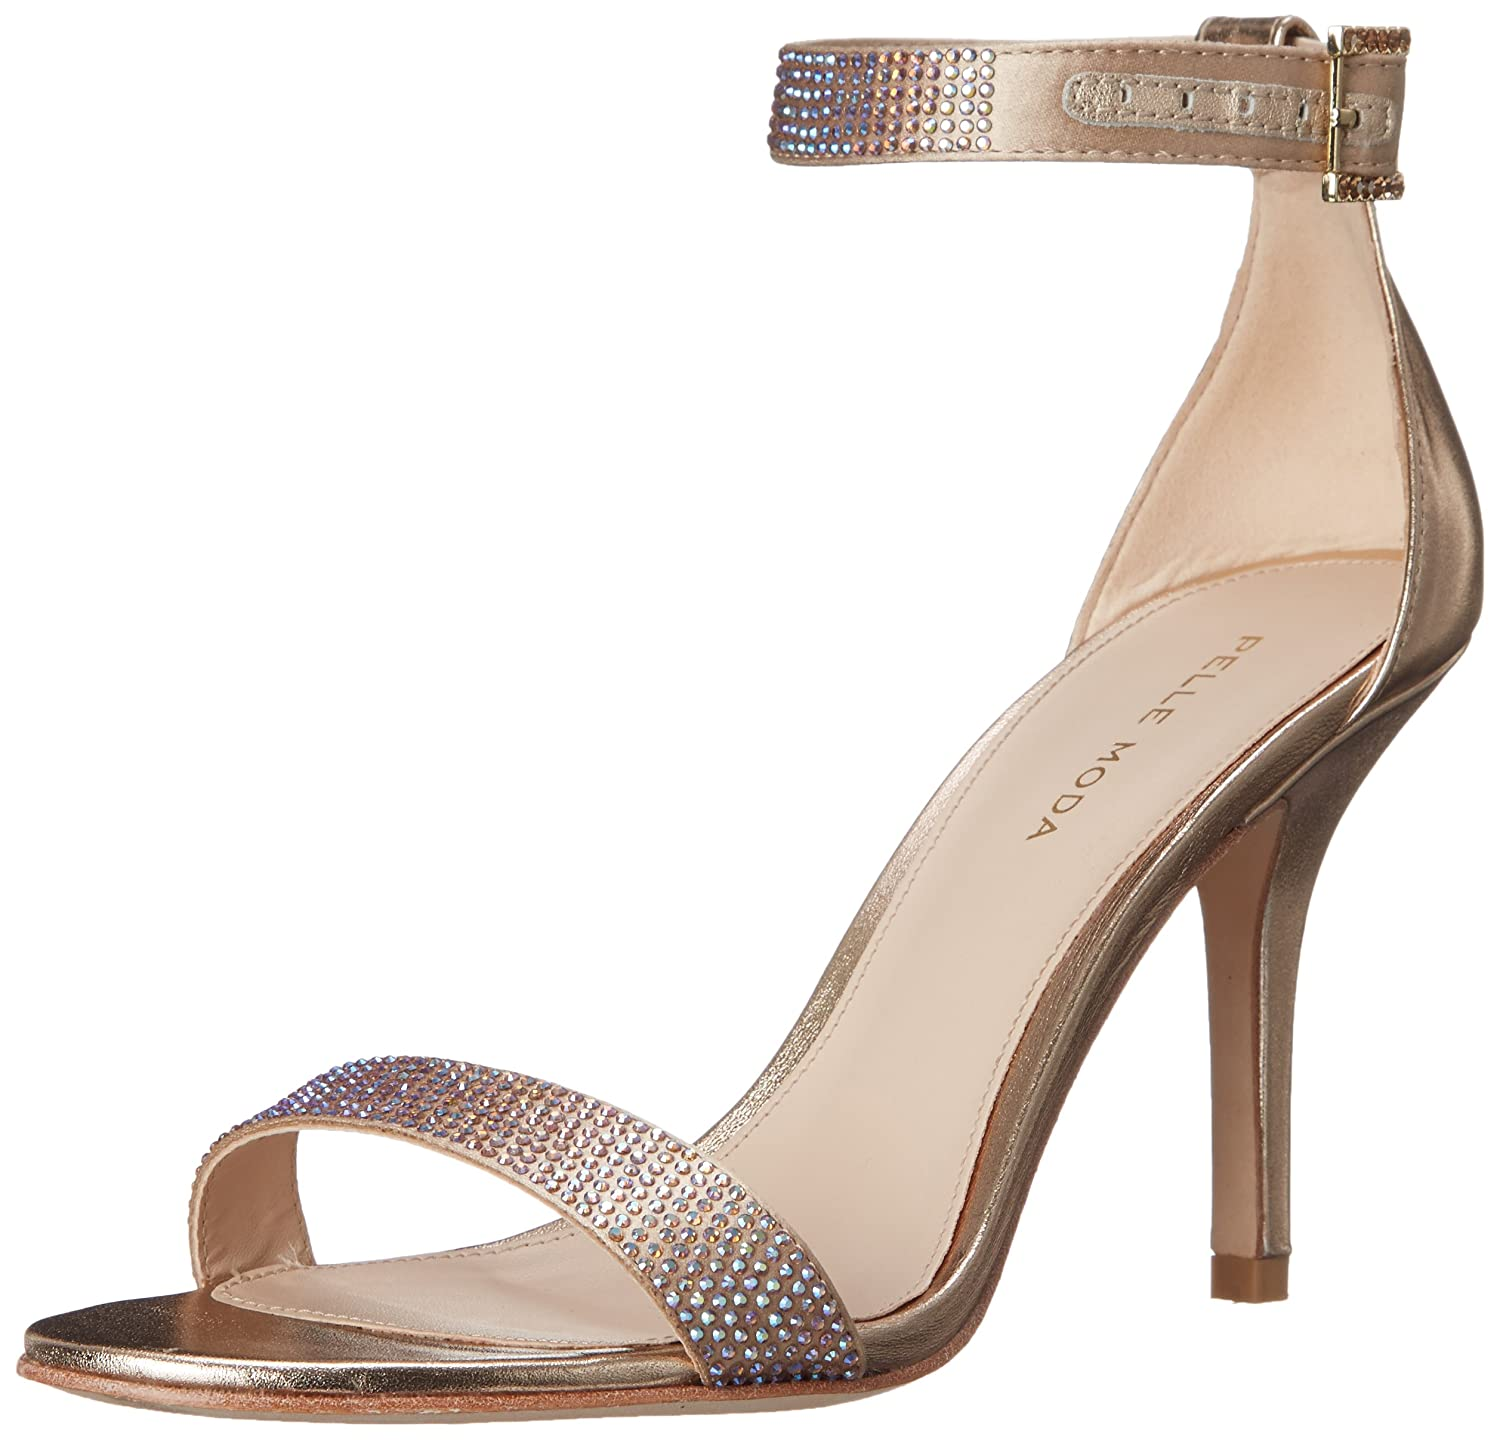 Pelle Moda Women's Kacey Dress Sandal B010BUG15G 9 B(M) US|Platinum Gold